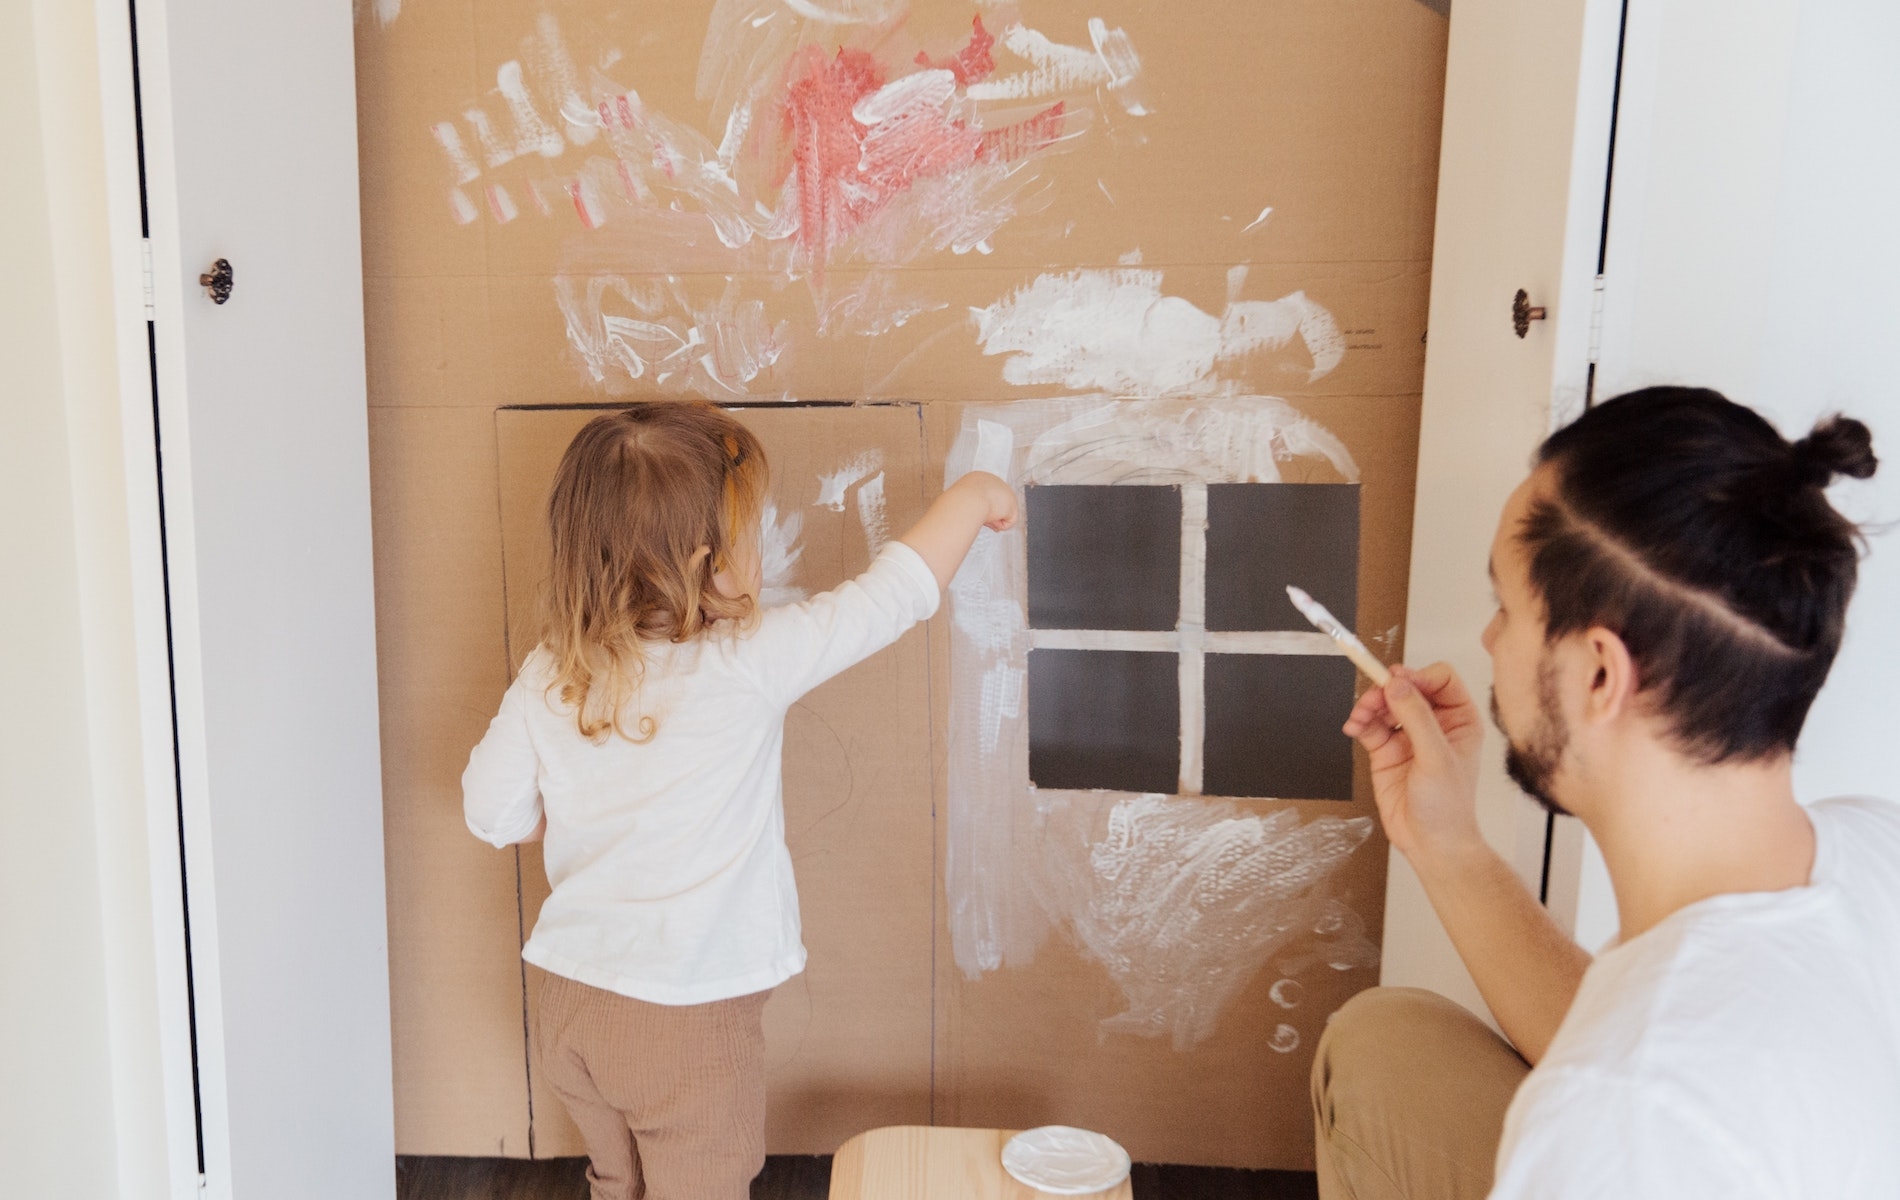 VIE Magazine, The Idea Boutique, 48 Activities to Keep Your Kids Occupied While at Home, At Home Activities